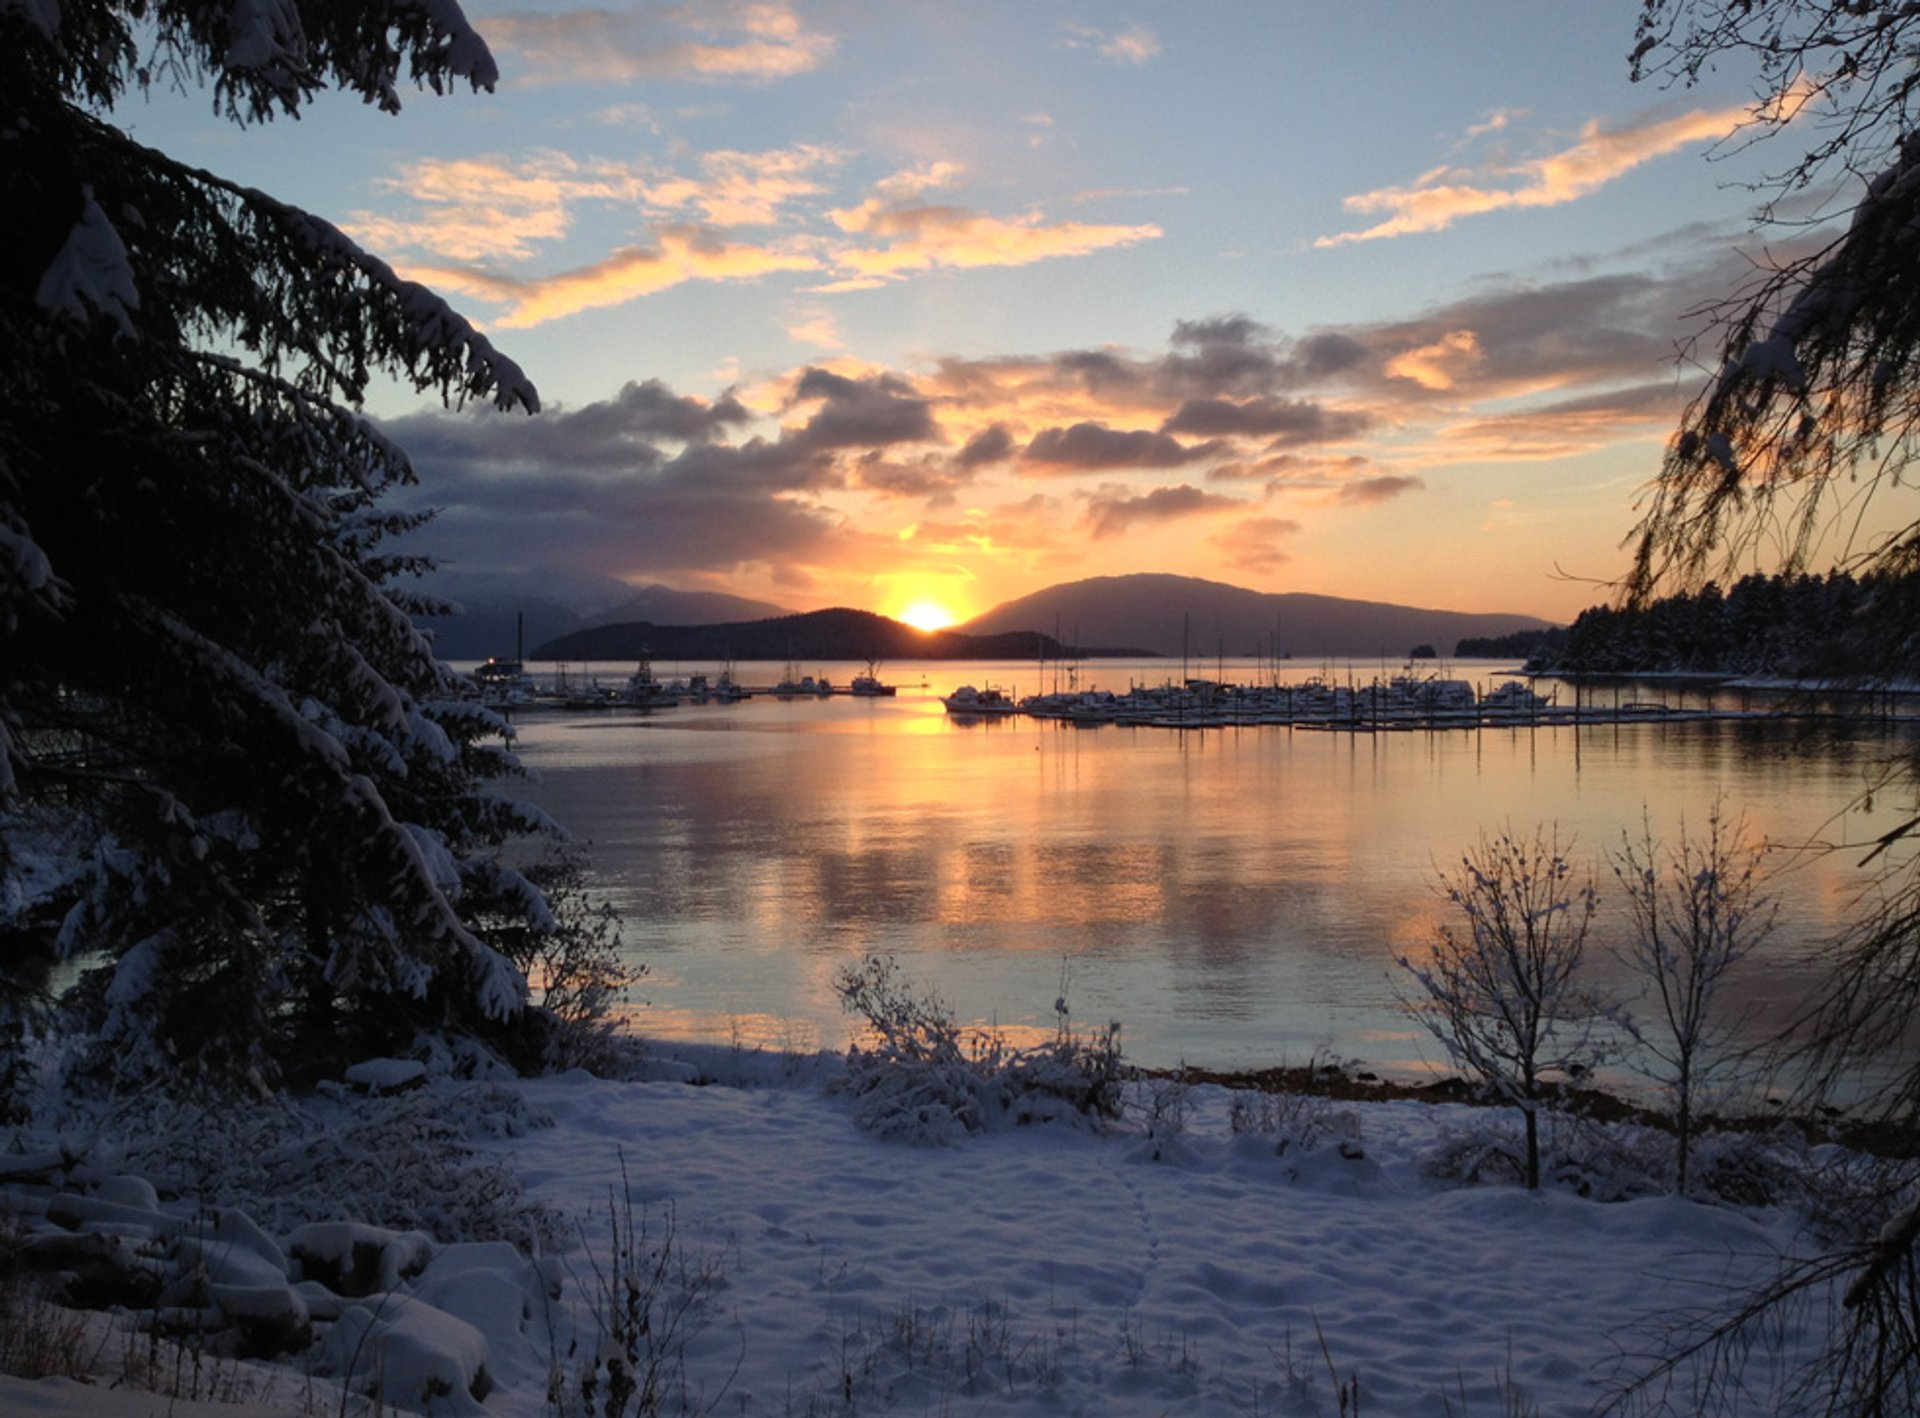 Auke Bay Winter Sunset in Alaska 2020 - Best Time